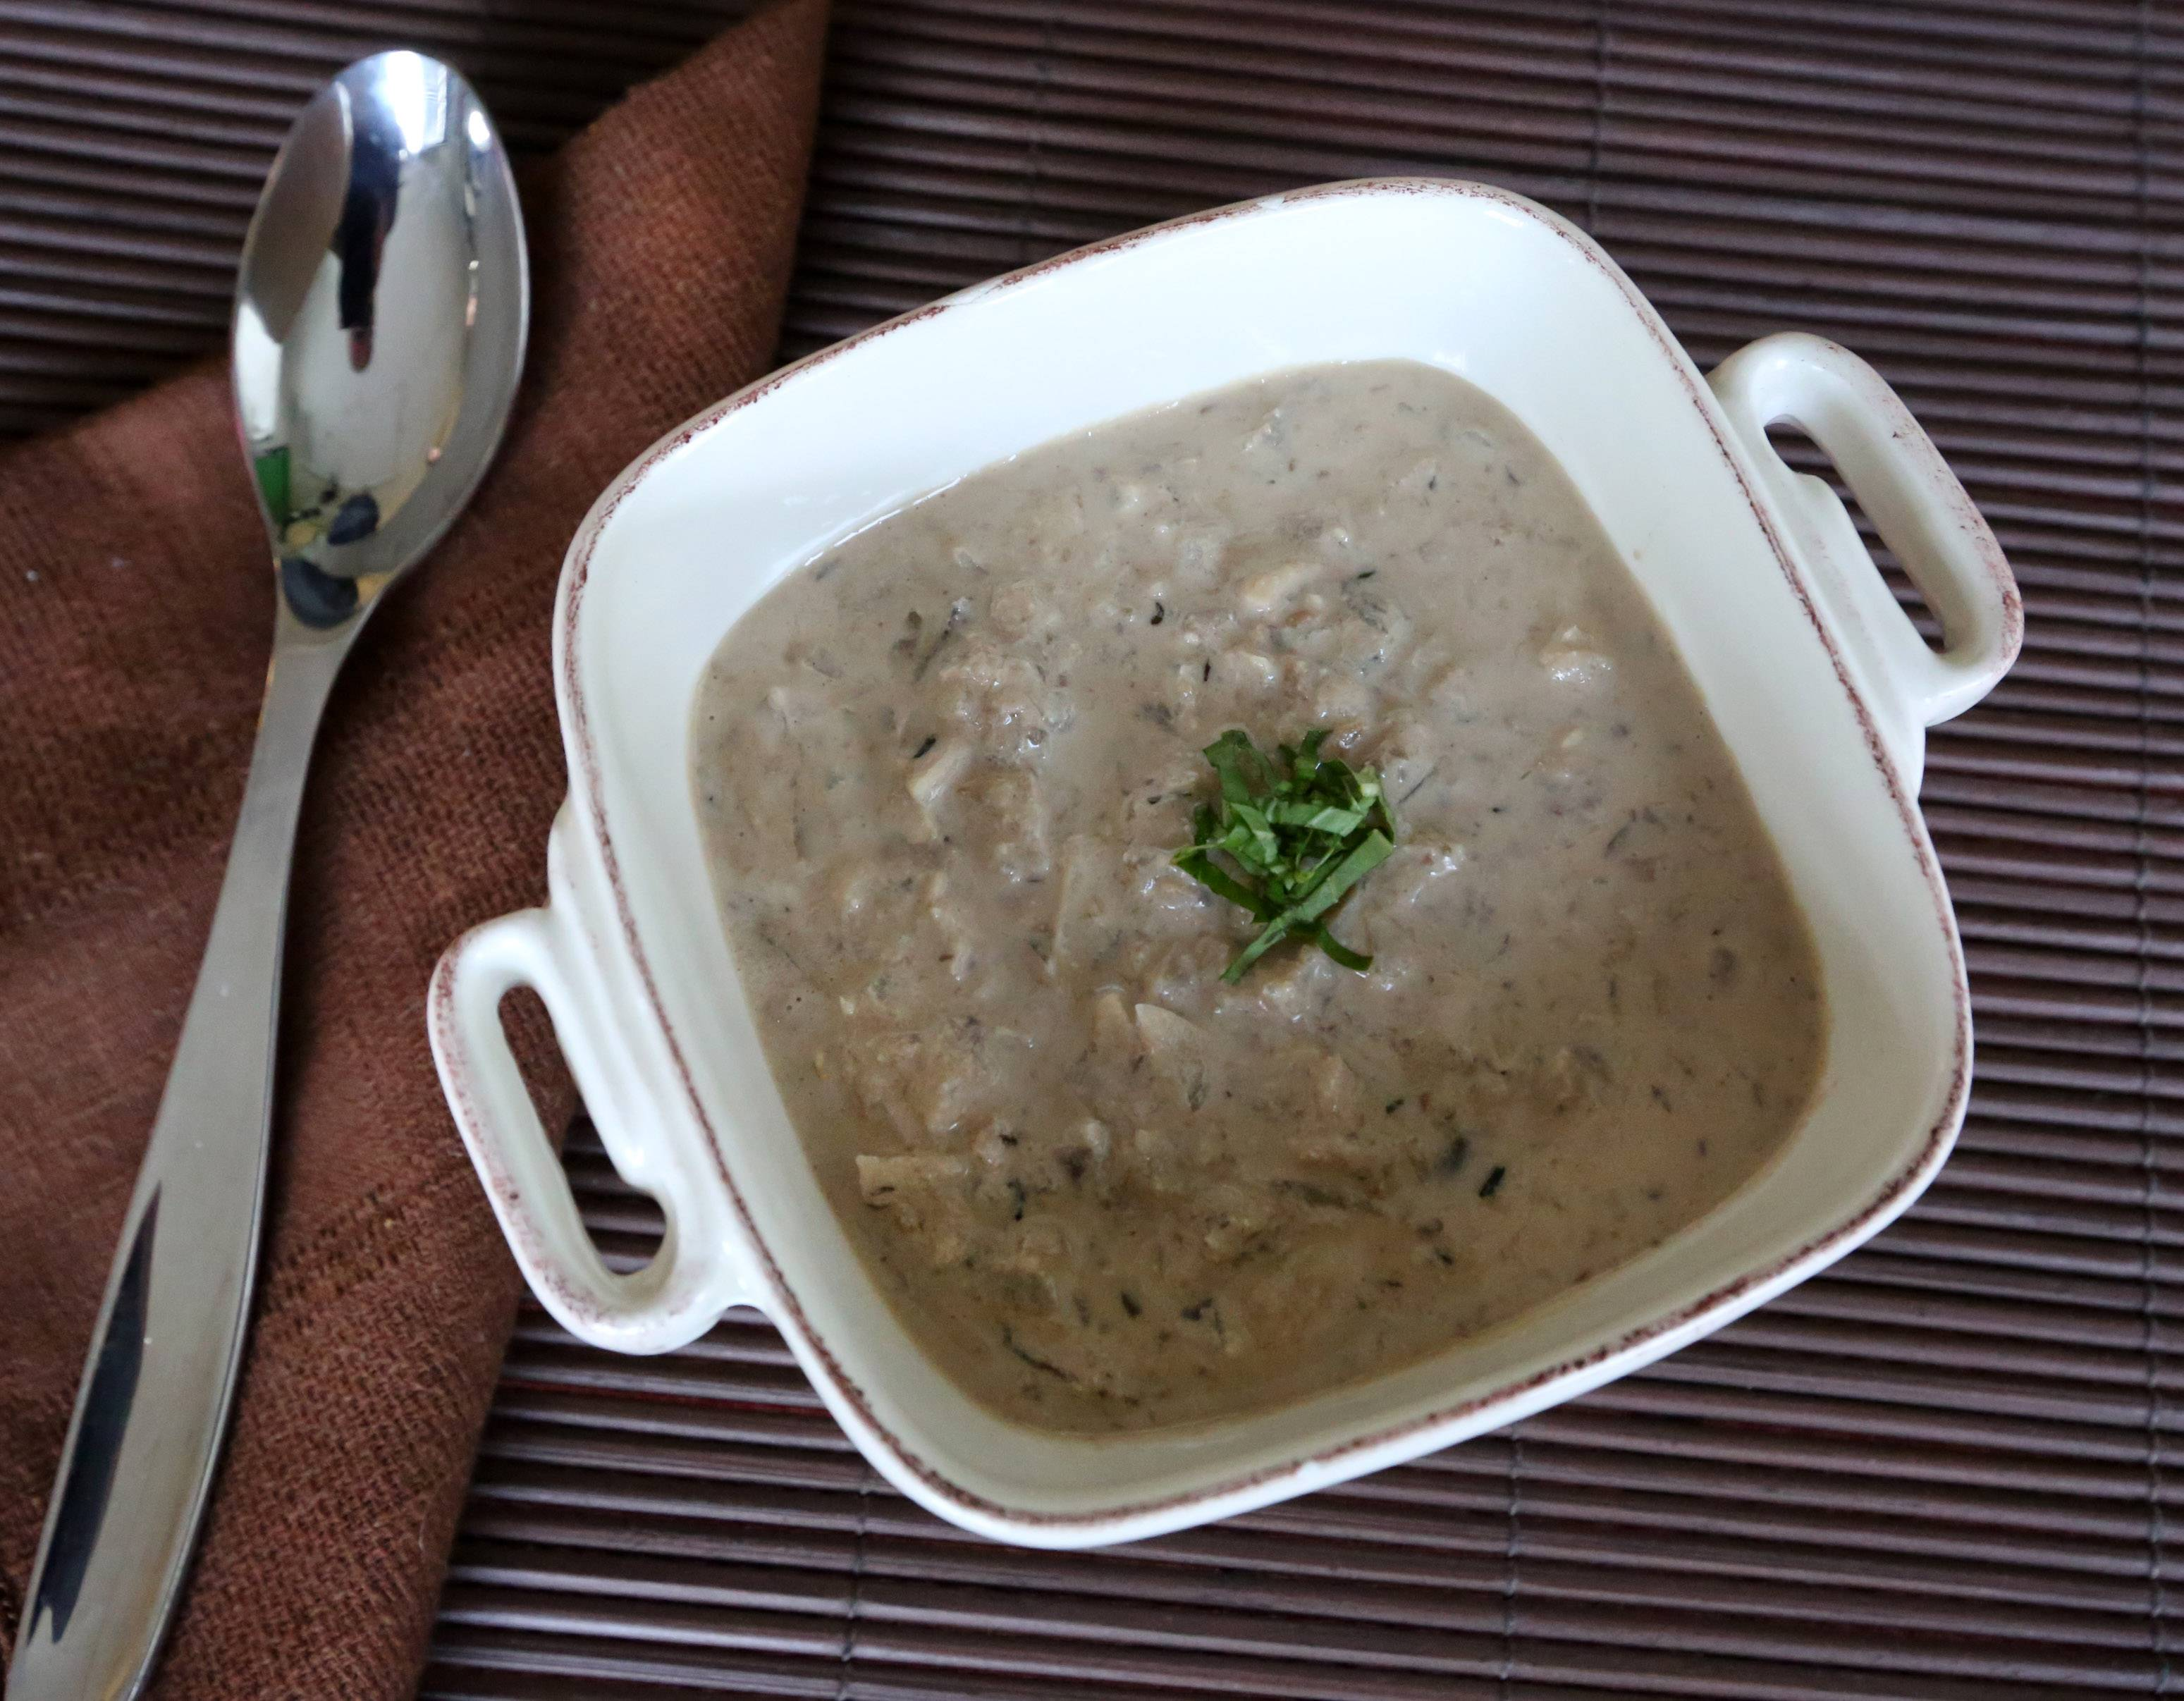 Toasted walnuts ground to a paste add rich, creamy texture to mushroom soup without adding cholesterol.